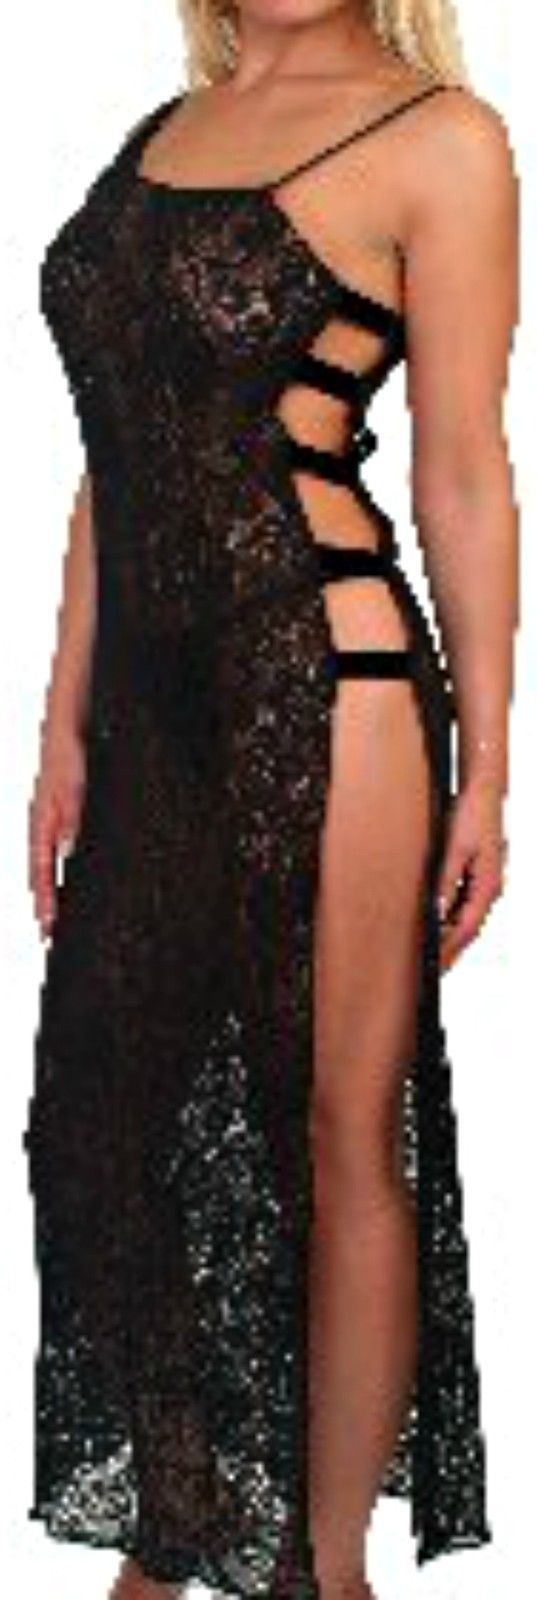 Black Stretch Lace Long Nightgown M Sexy Open Side